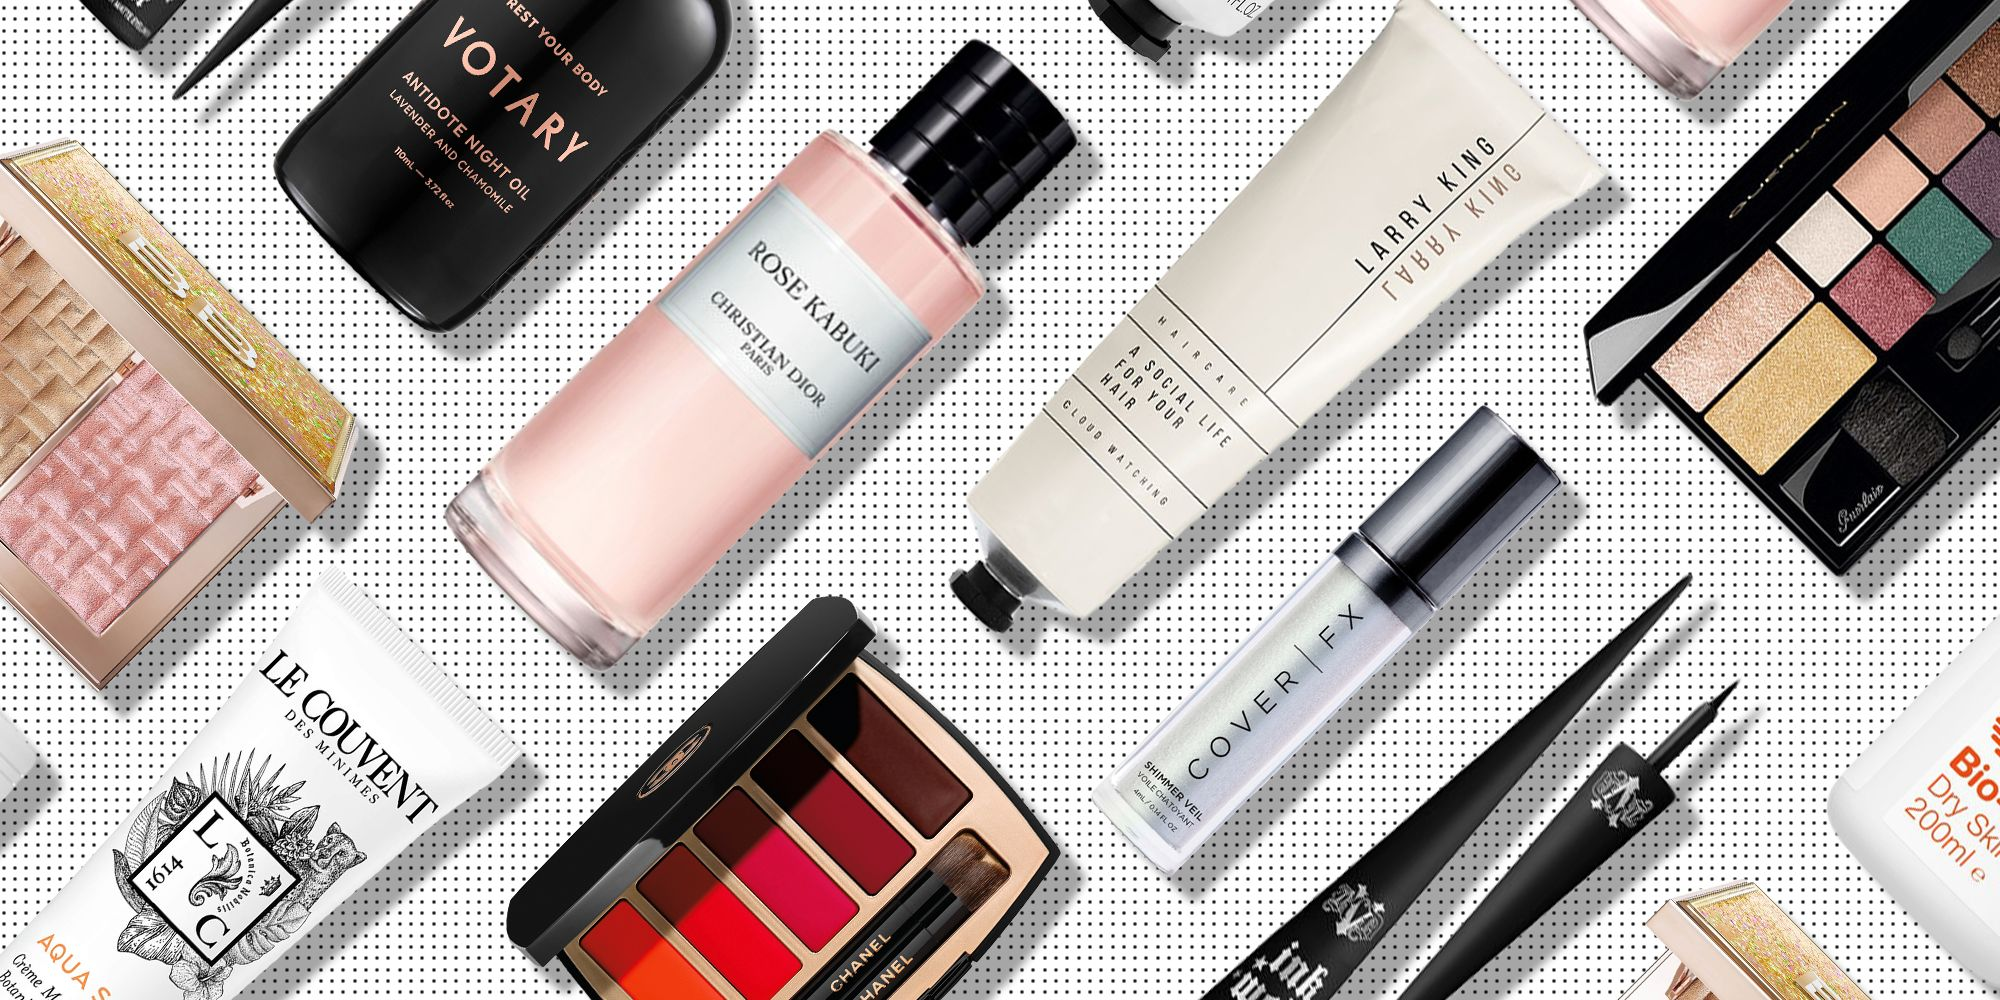 November Beauty Haul: Team ELLE's Pick Of The Best New Beauty Products This Month